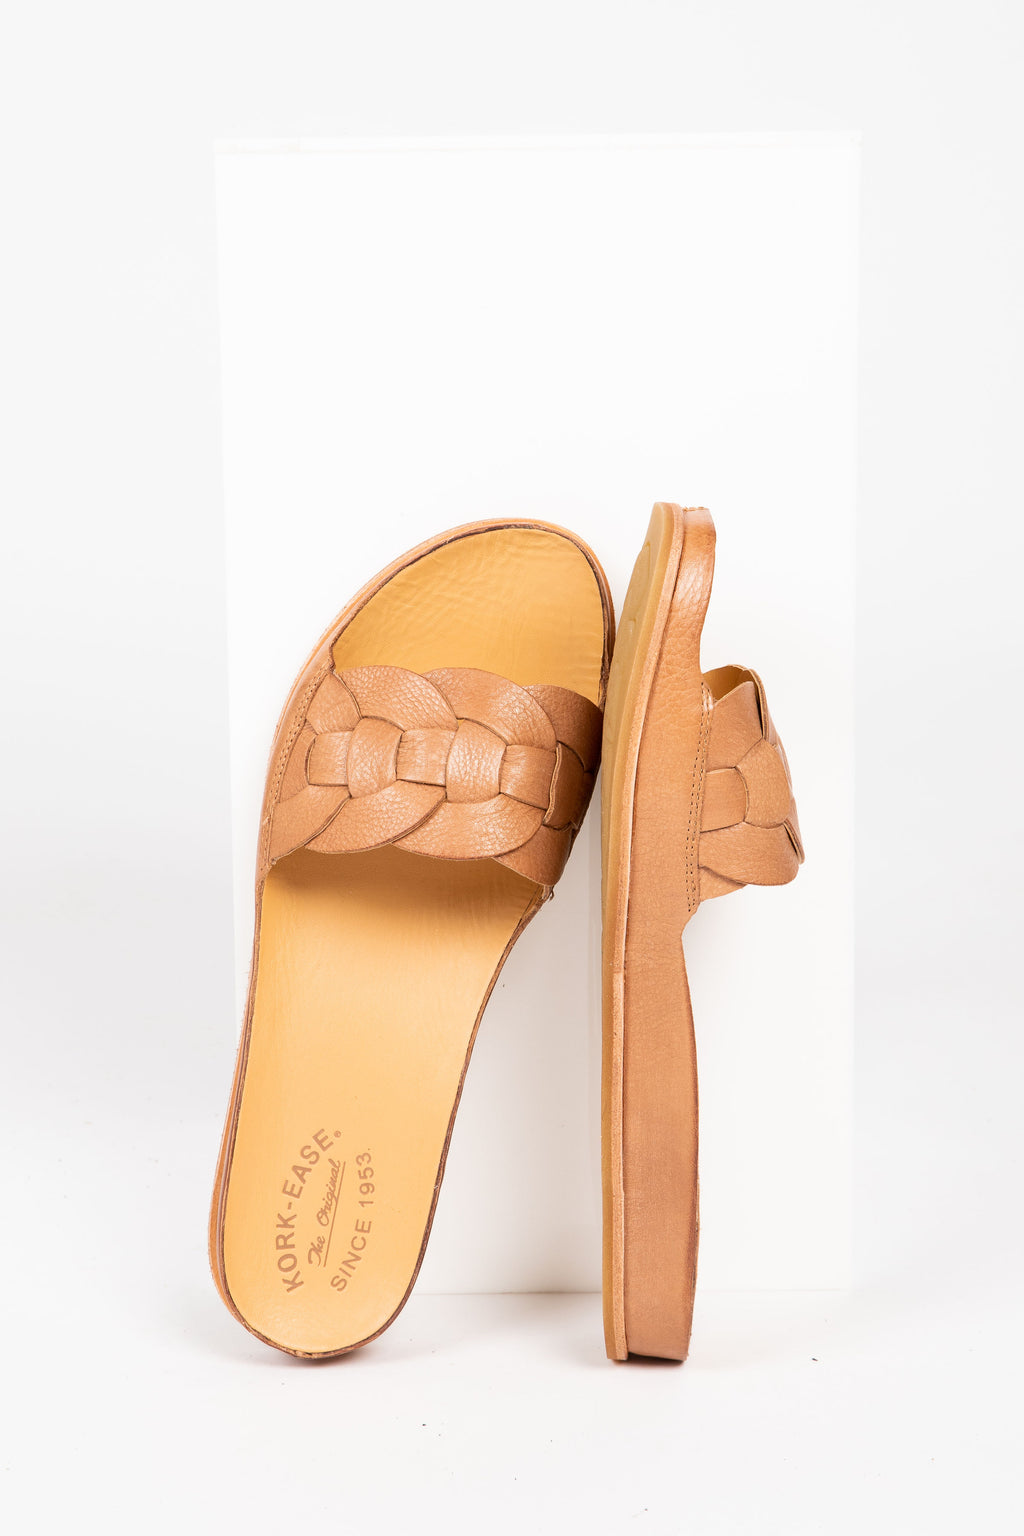 Kork-Ease: Dolphin Sandal in West